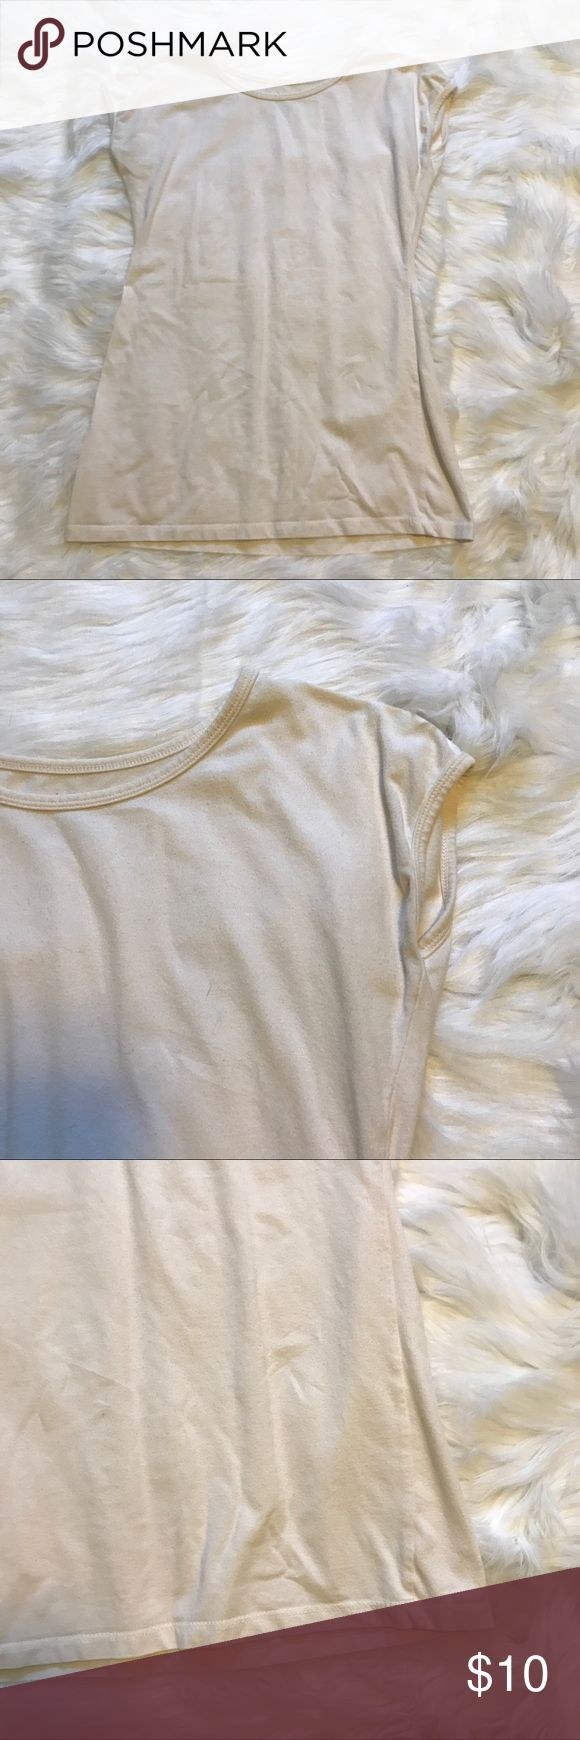 Basic Cream Tee by Downeast Basic cream T-Shirt in size M by Shade sold at Downeast Downeast Basics Tops Tees - Short Sleeve